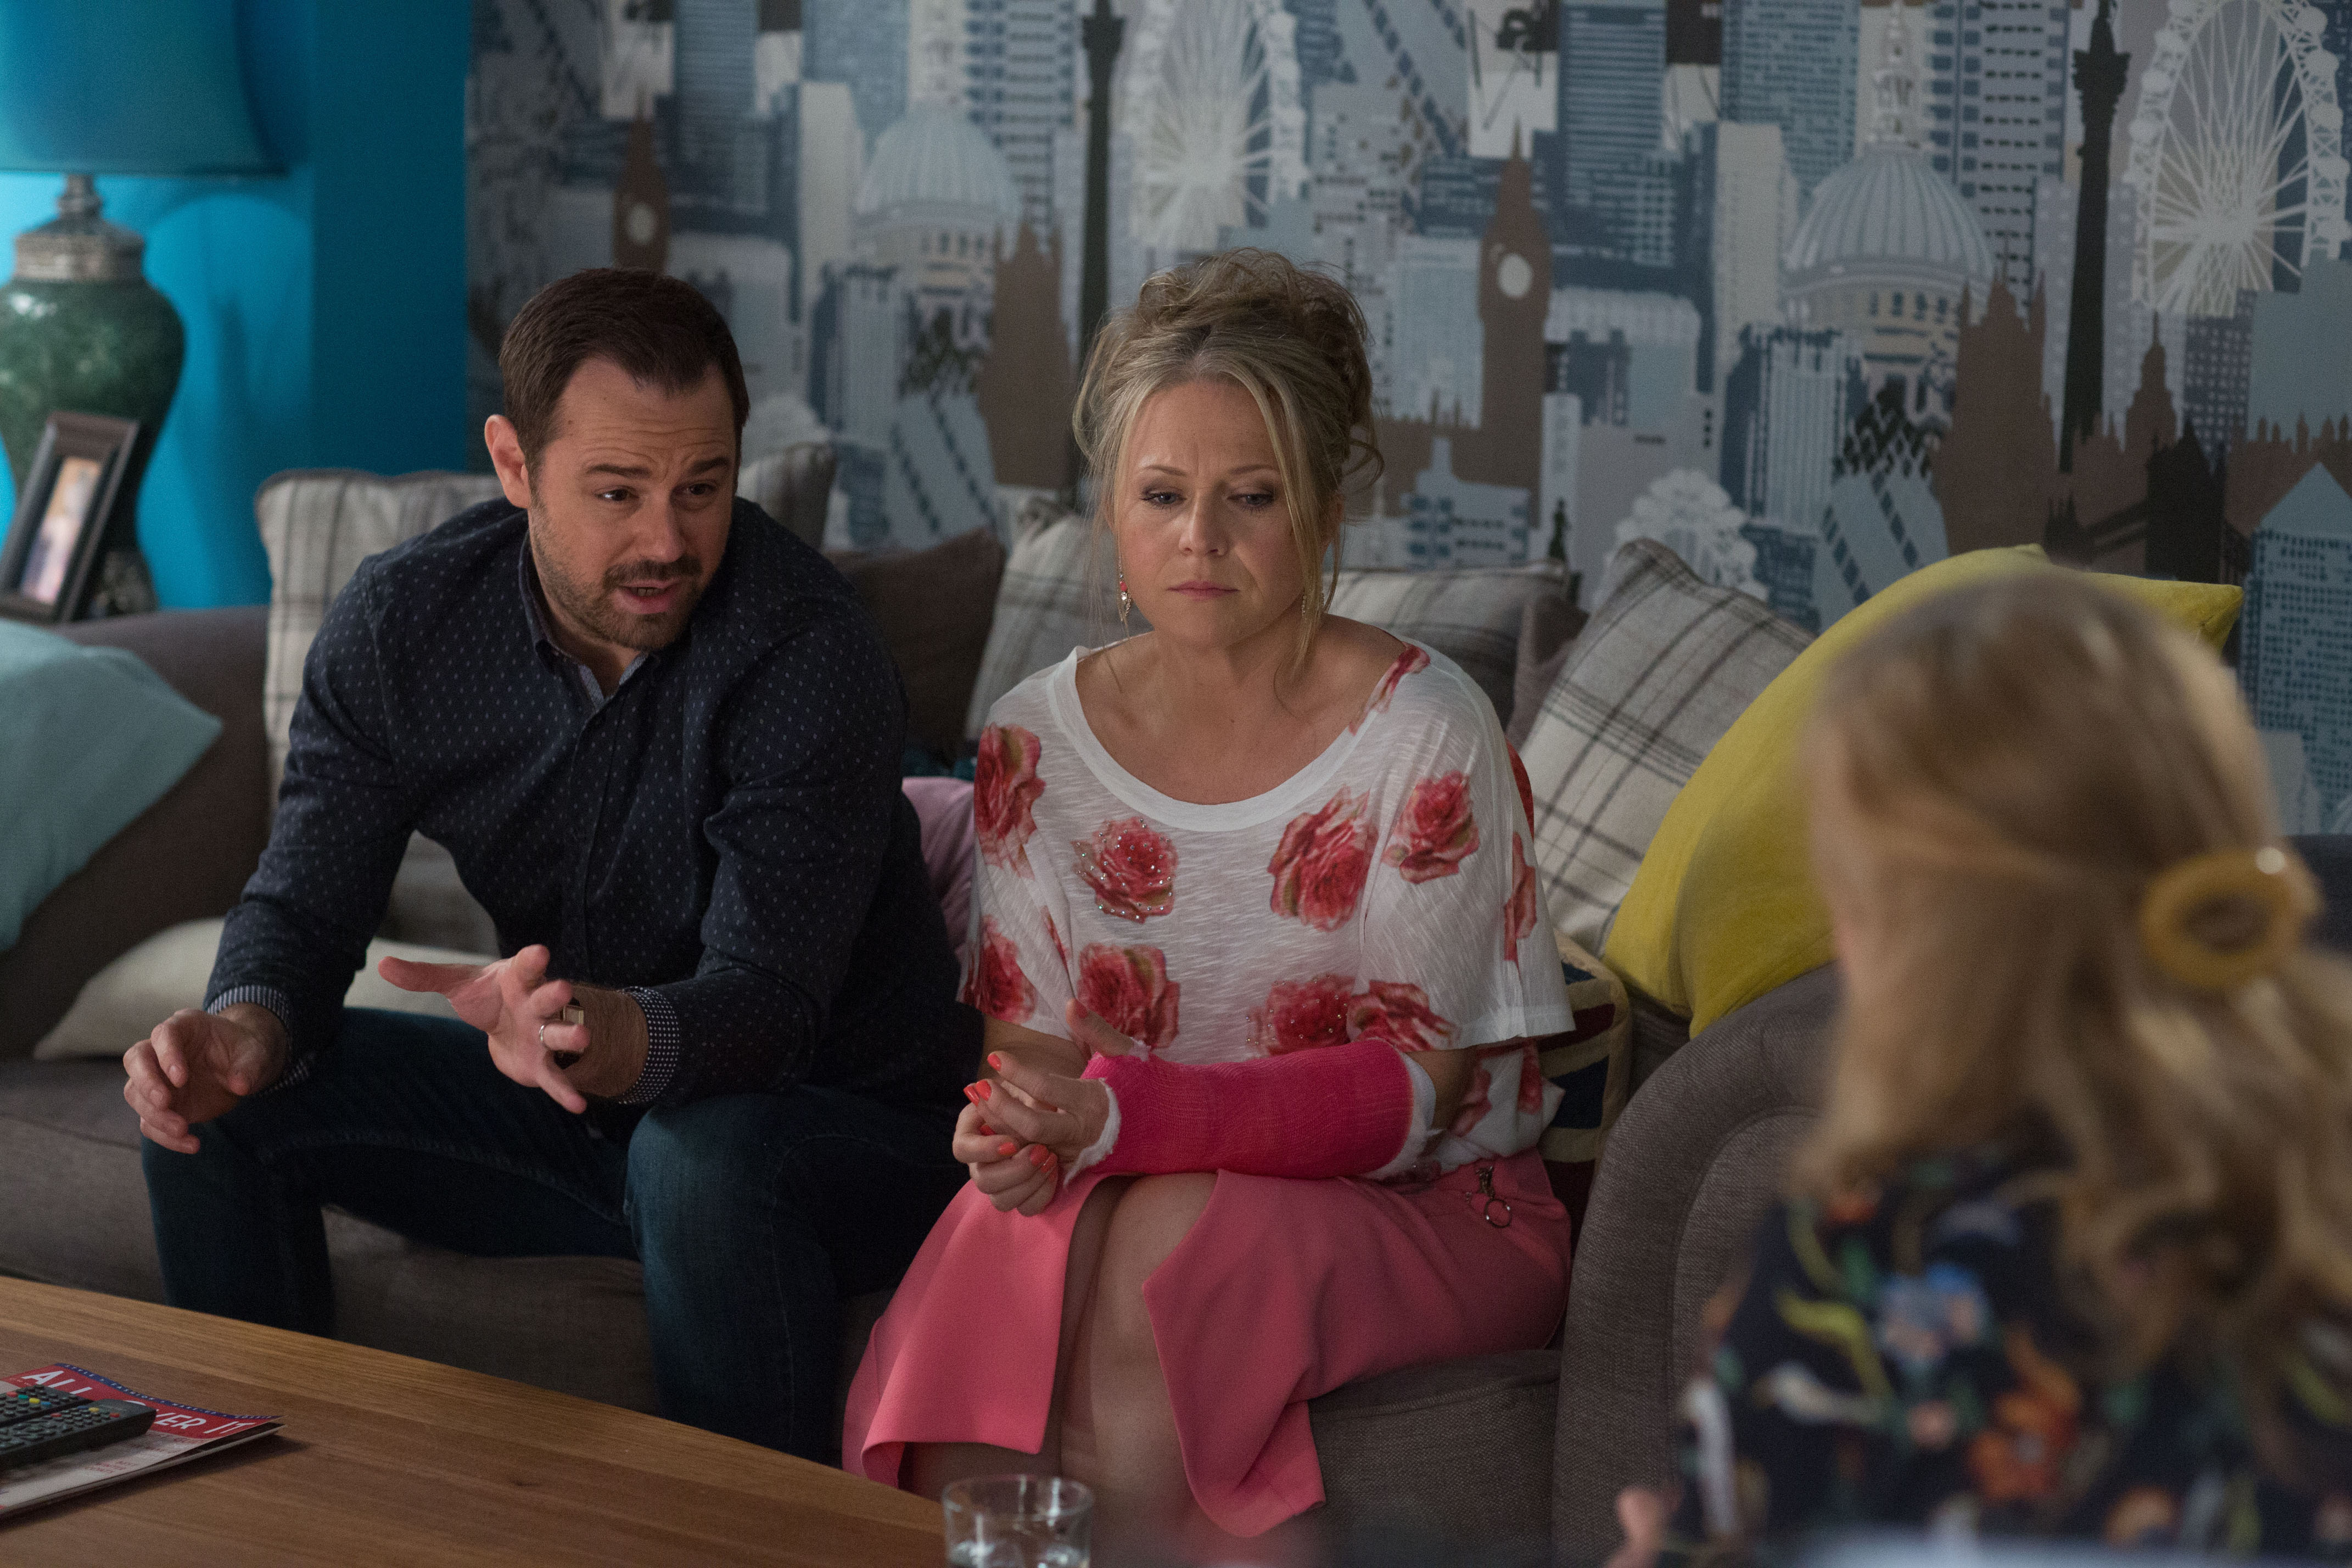 14032064-high_res-eastenders-july-september-2017_Linda_mick_xcn;kxbzn;kzxbn